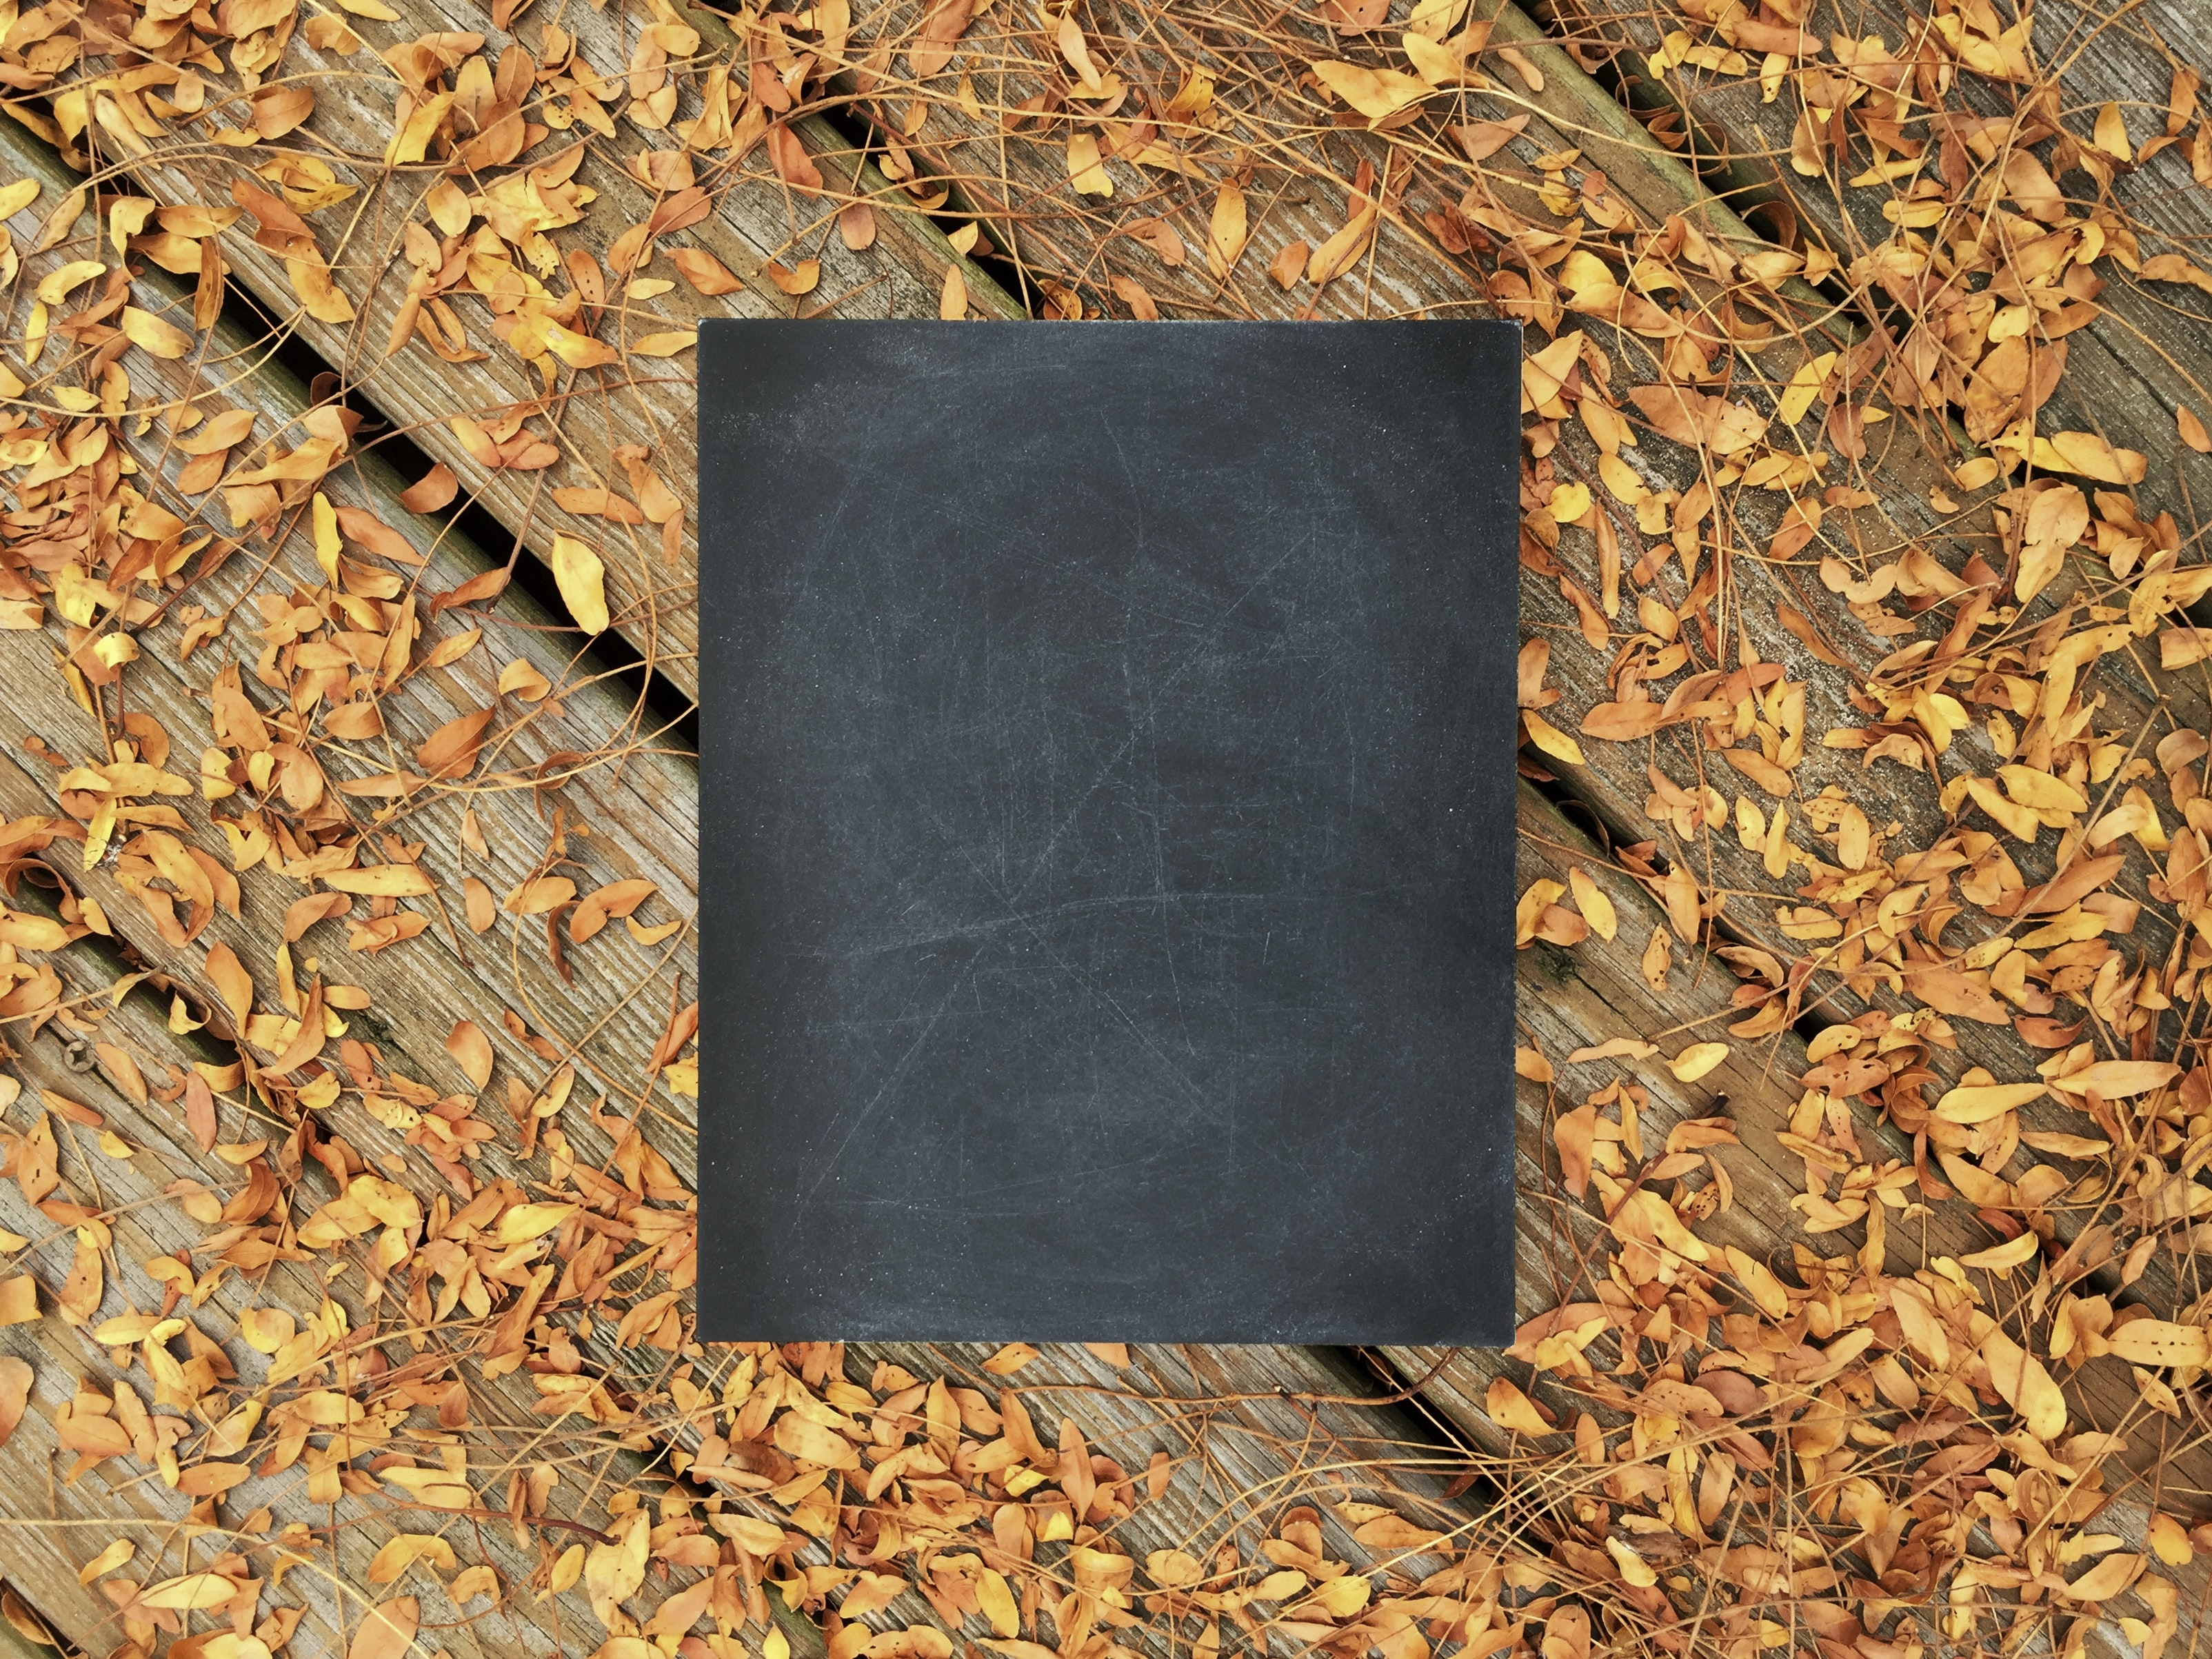 black box on wooden surface with fallen leaves